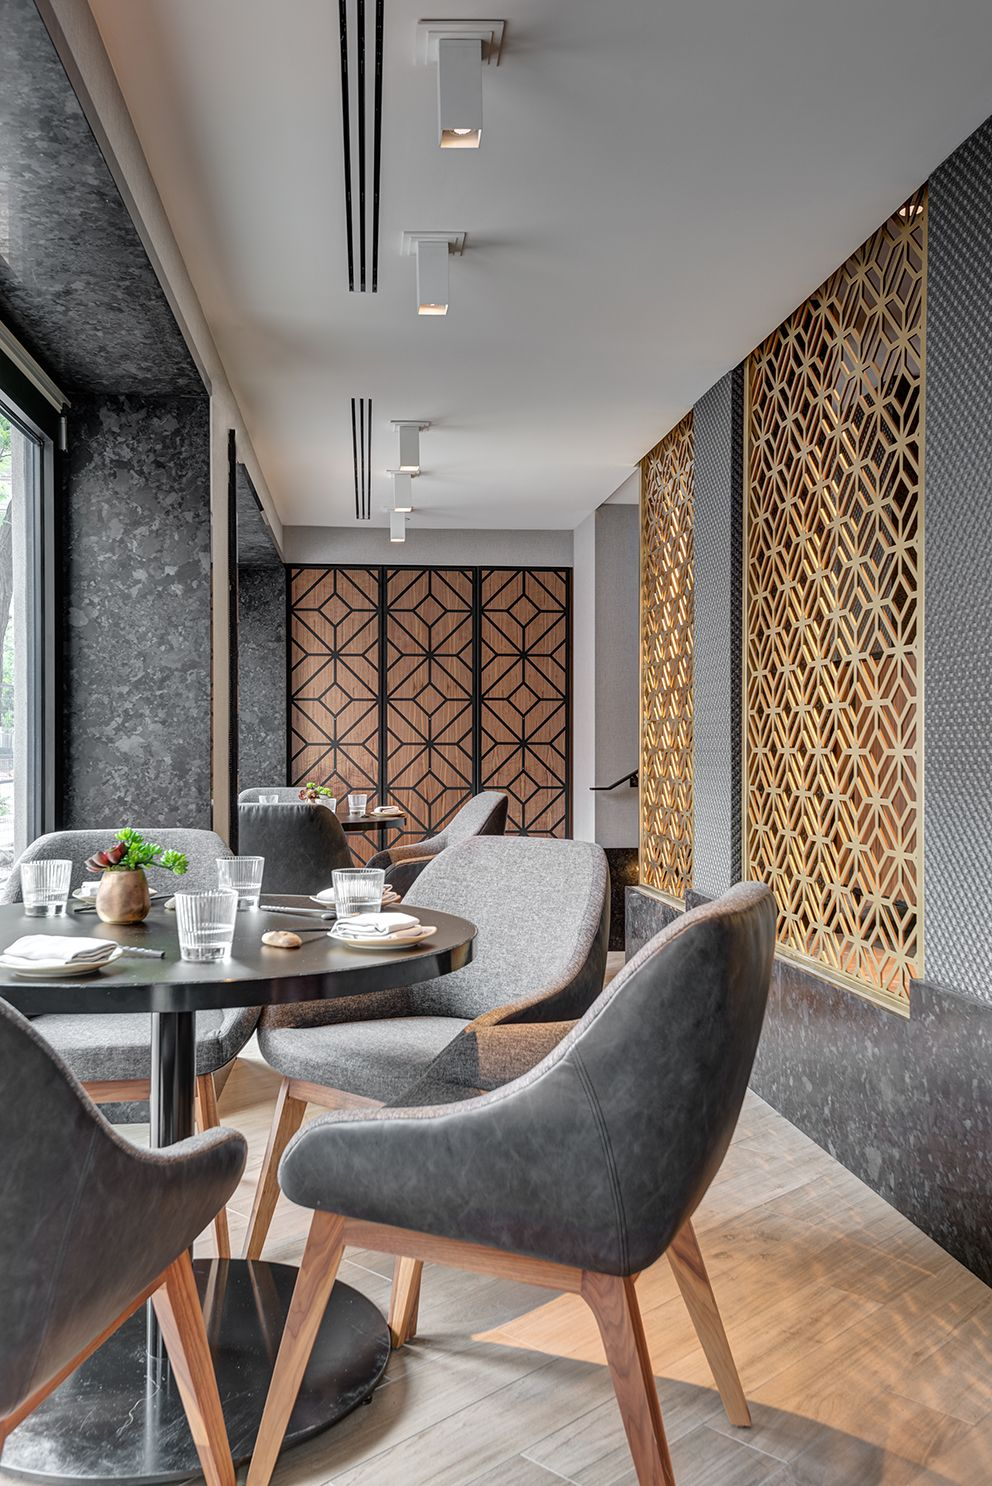 Kasa Moto is a contemporary Japanese restaurant that pays homage to the ancient ideals of wabi (transient and stark beauty), sabi (the beauty of natural patina and aging) and yūgen (profound grace and subtlety).